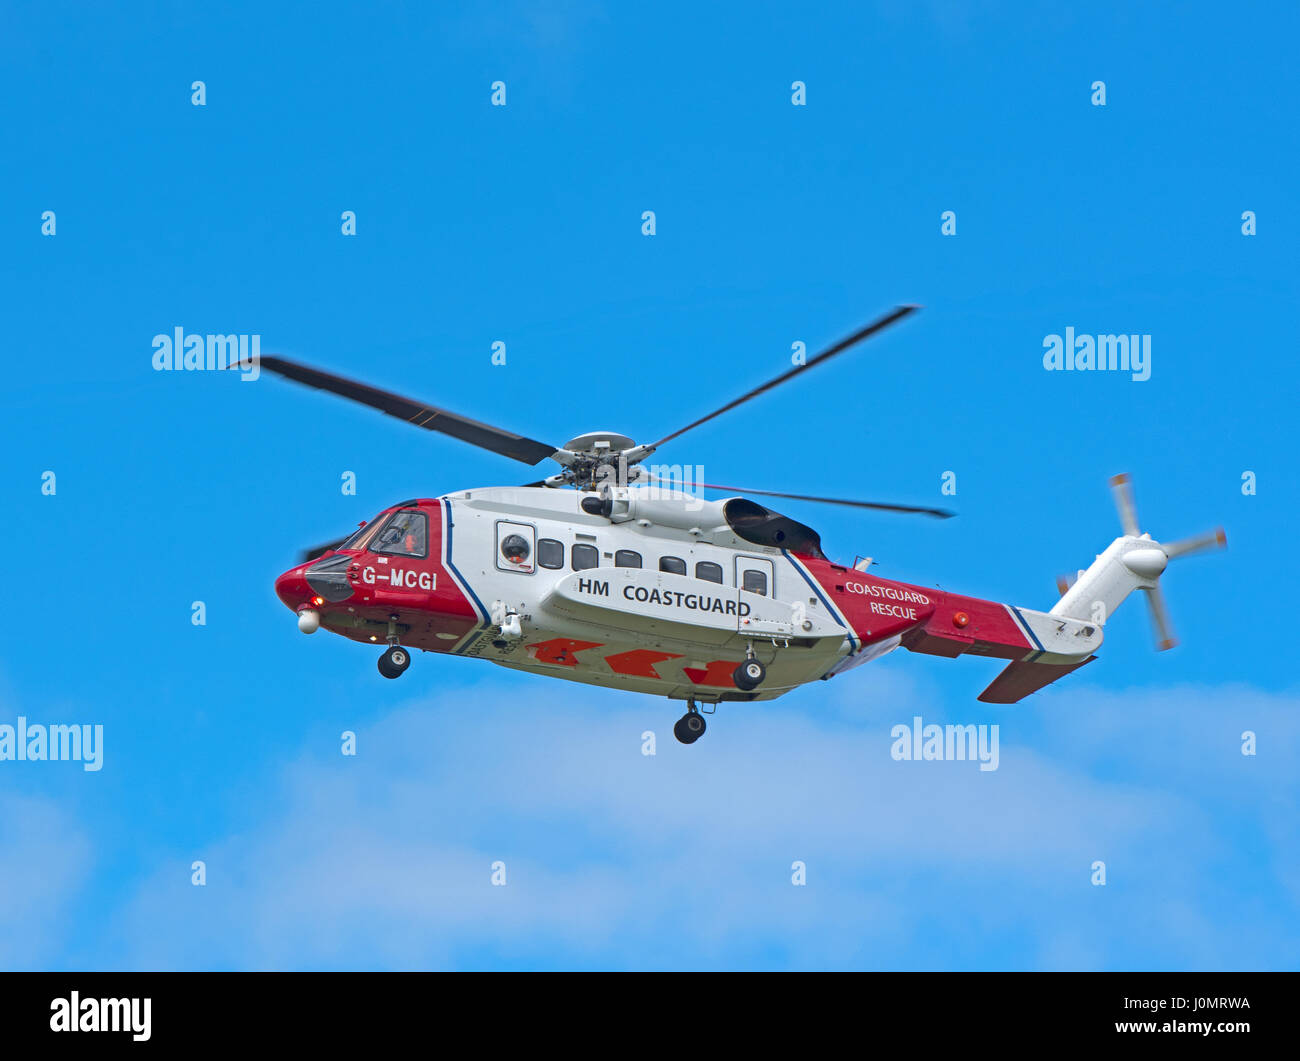 UK Coastguard Sikorsky S-92a Helicopter G-MCGI departing its Inverness Dalcross Airport base on an emergency callout. - Stock Image